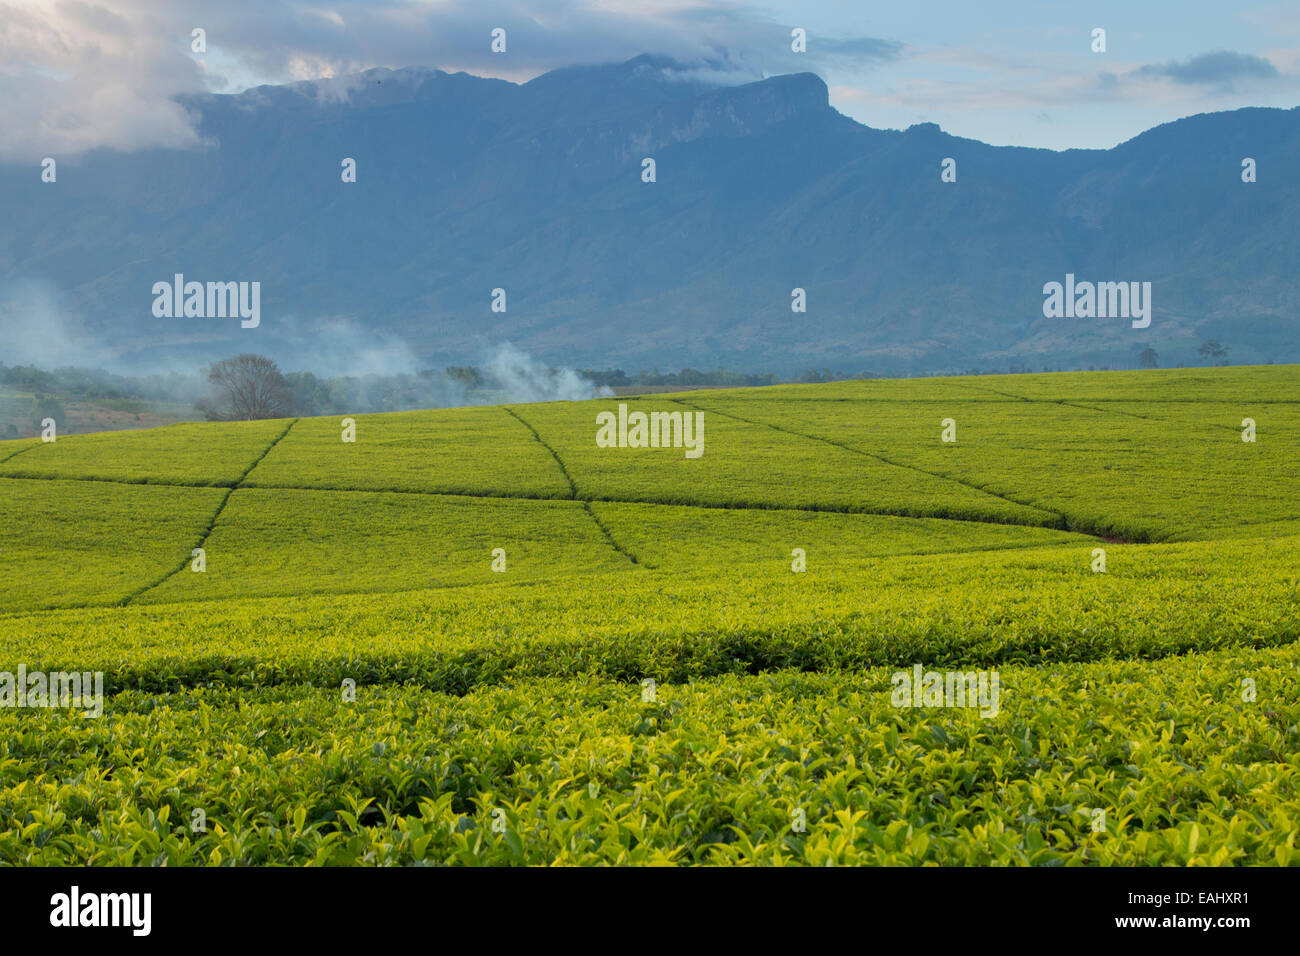 Tea estates at Mount Mulanje, Southern Malawi. - Stock Image